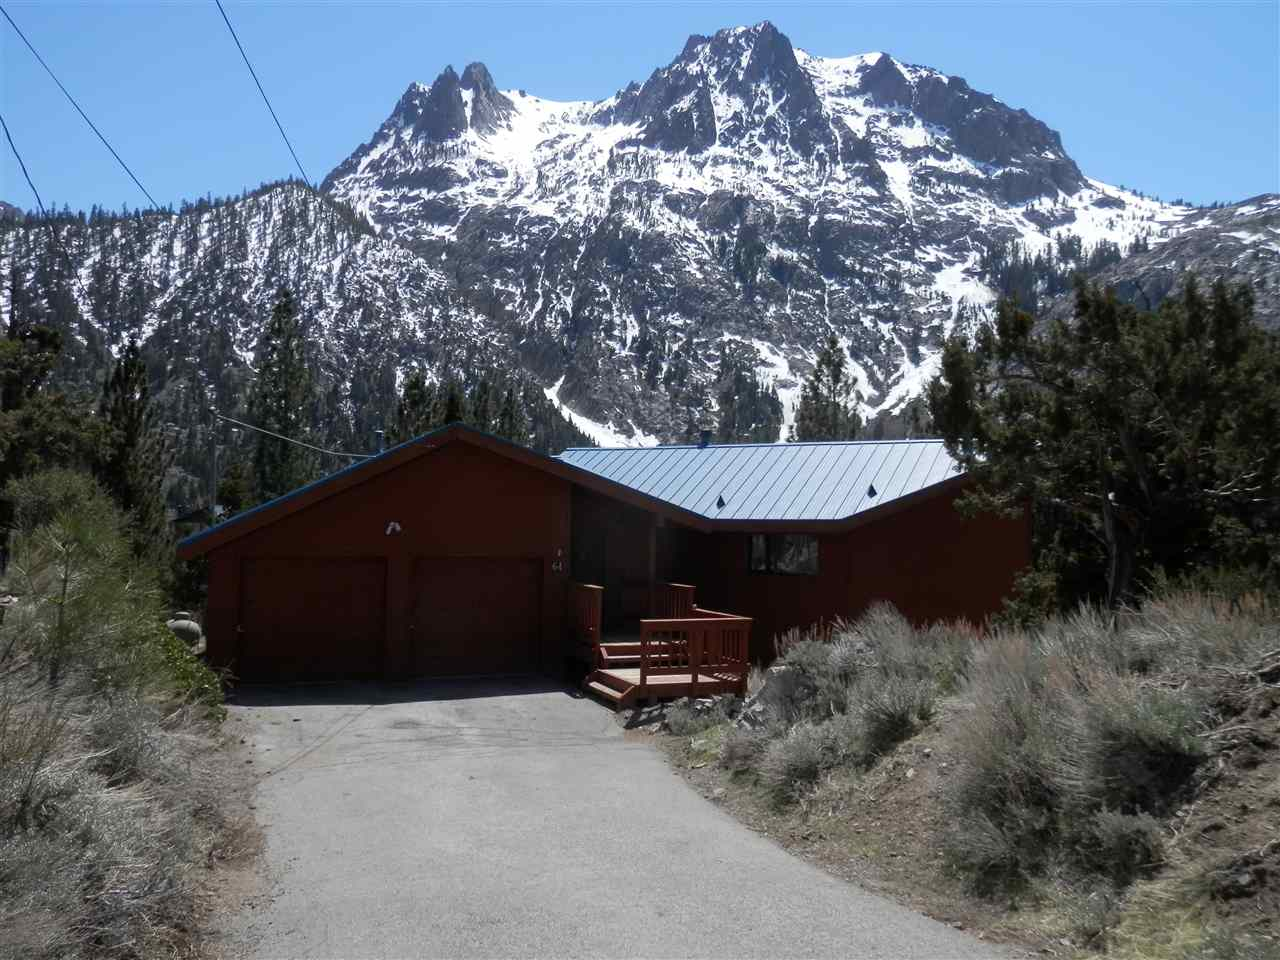 64 Rea Drive, June Lake, CA 93529